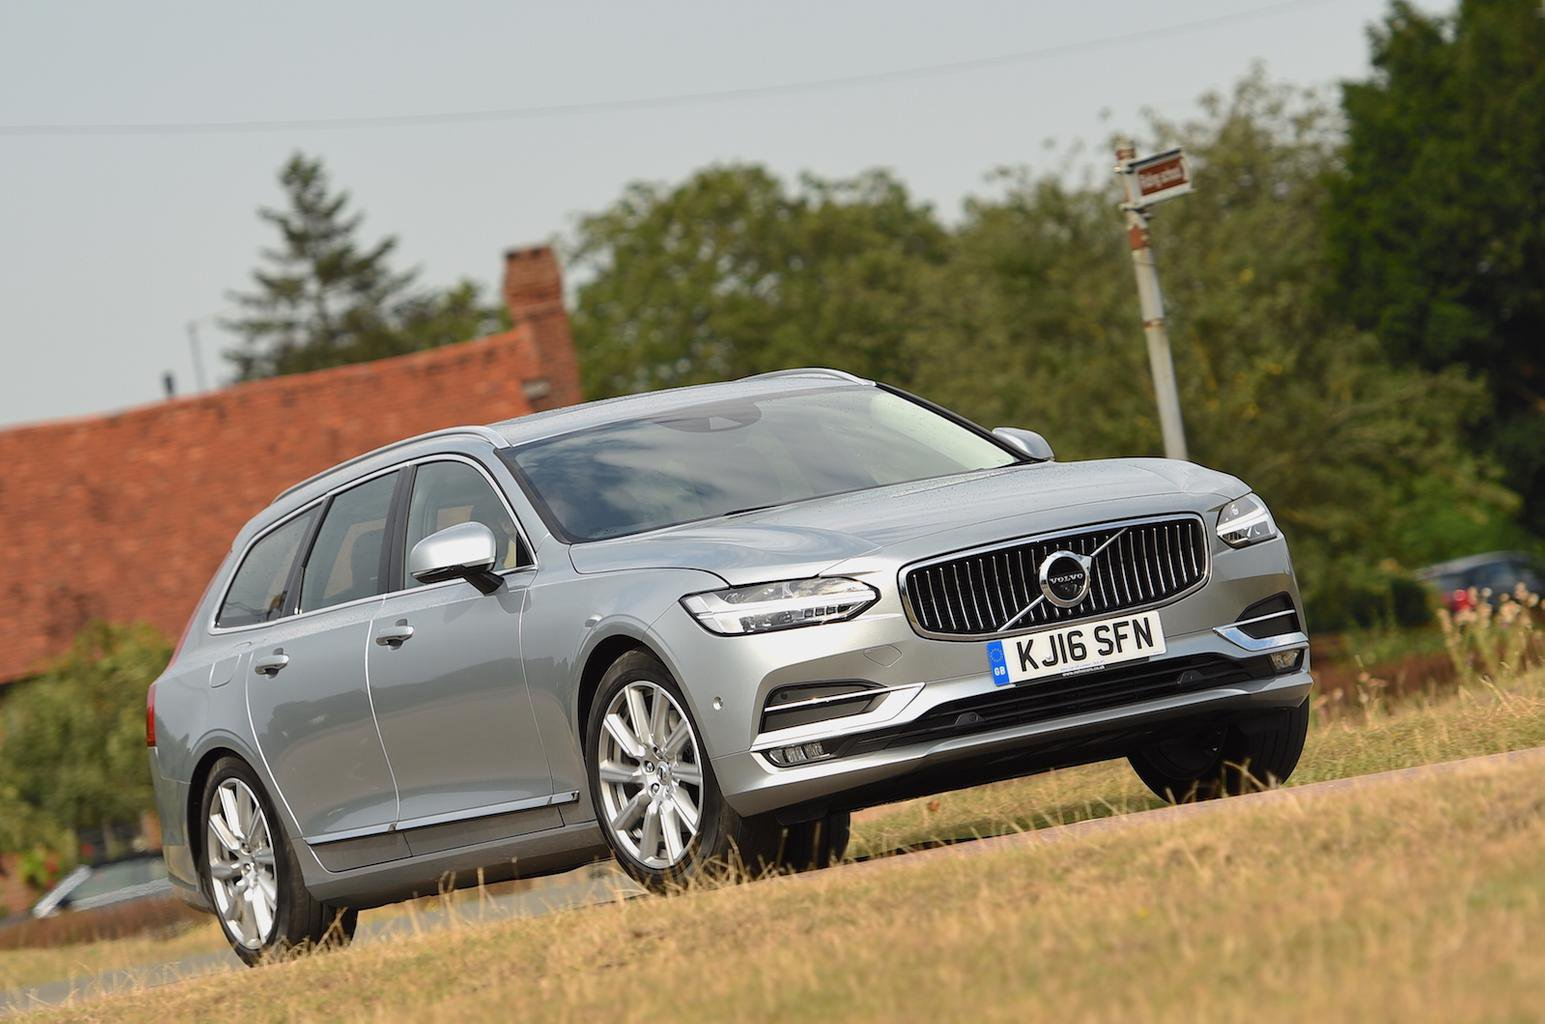 2016 Volvo V90 D4 review